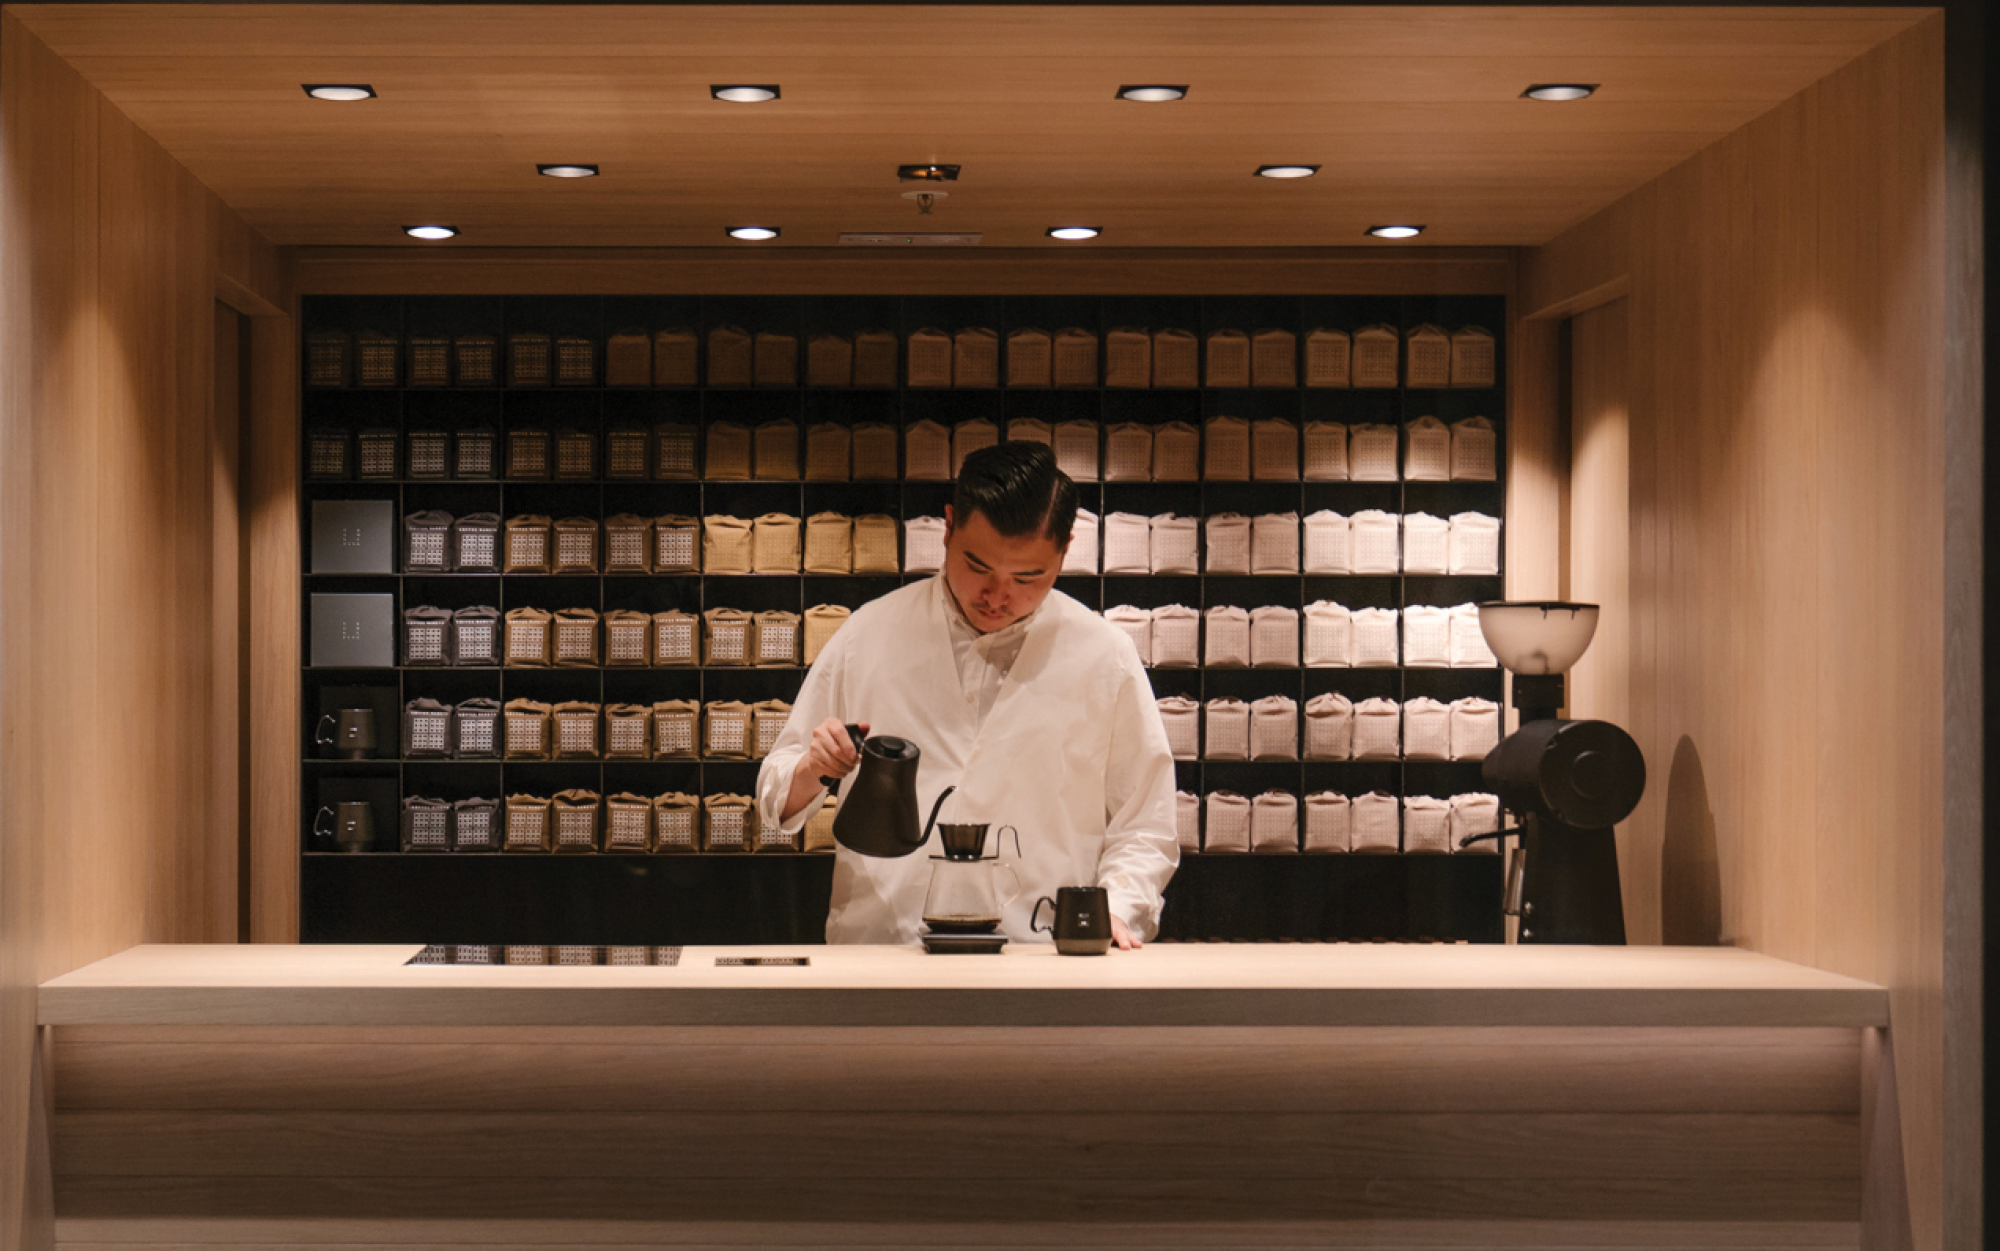 Tokyo's Koffee Mameya Opens Its First Overseas Branch At K11 Musea